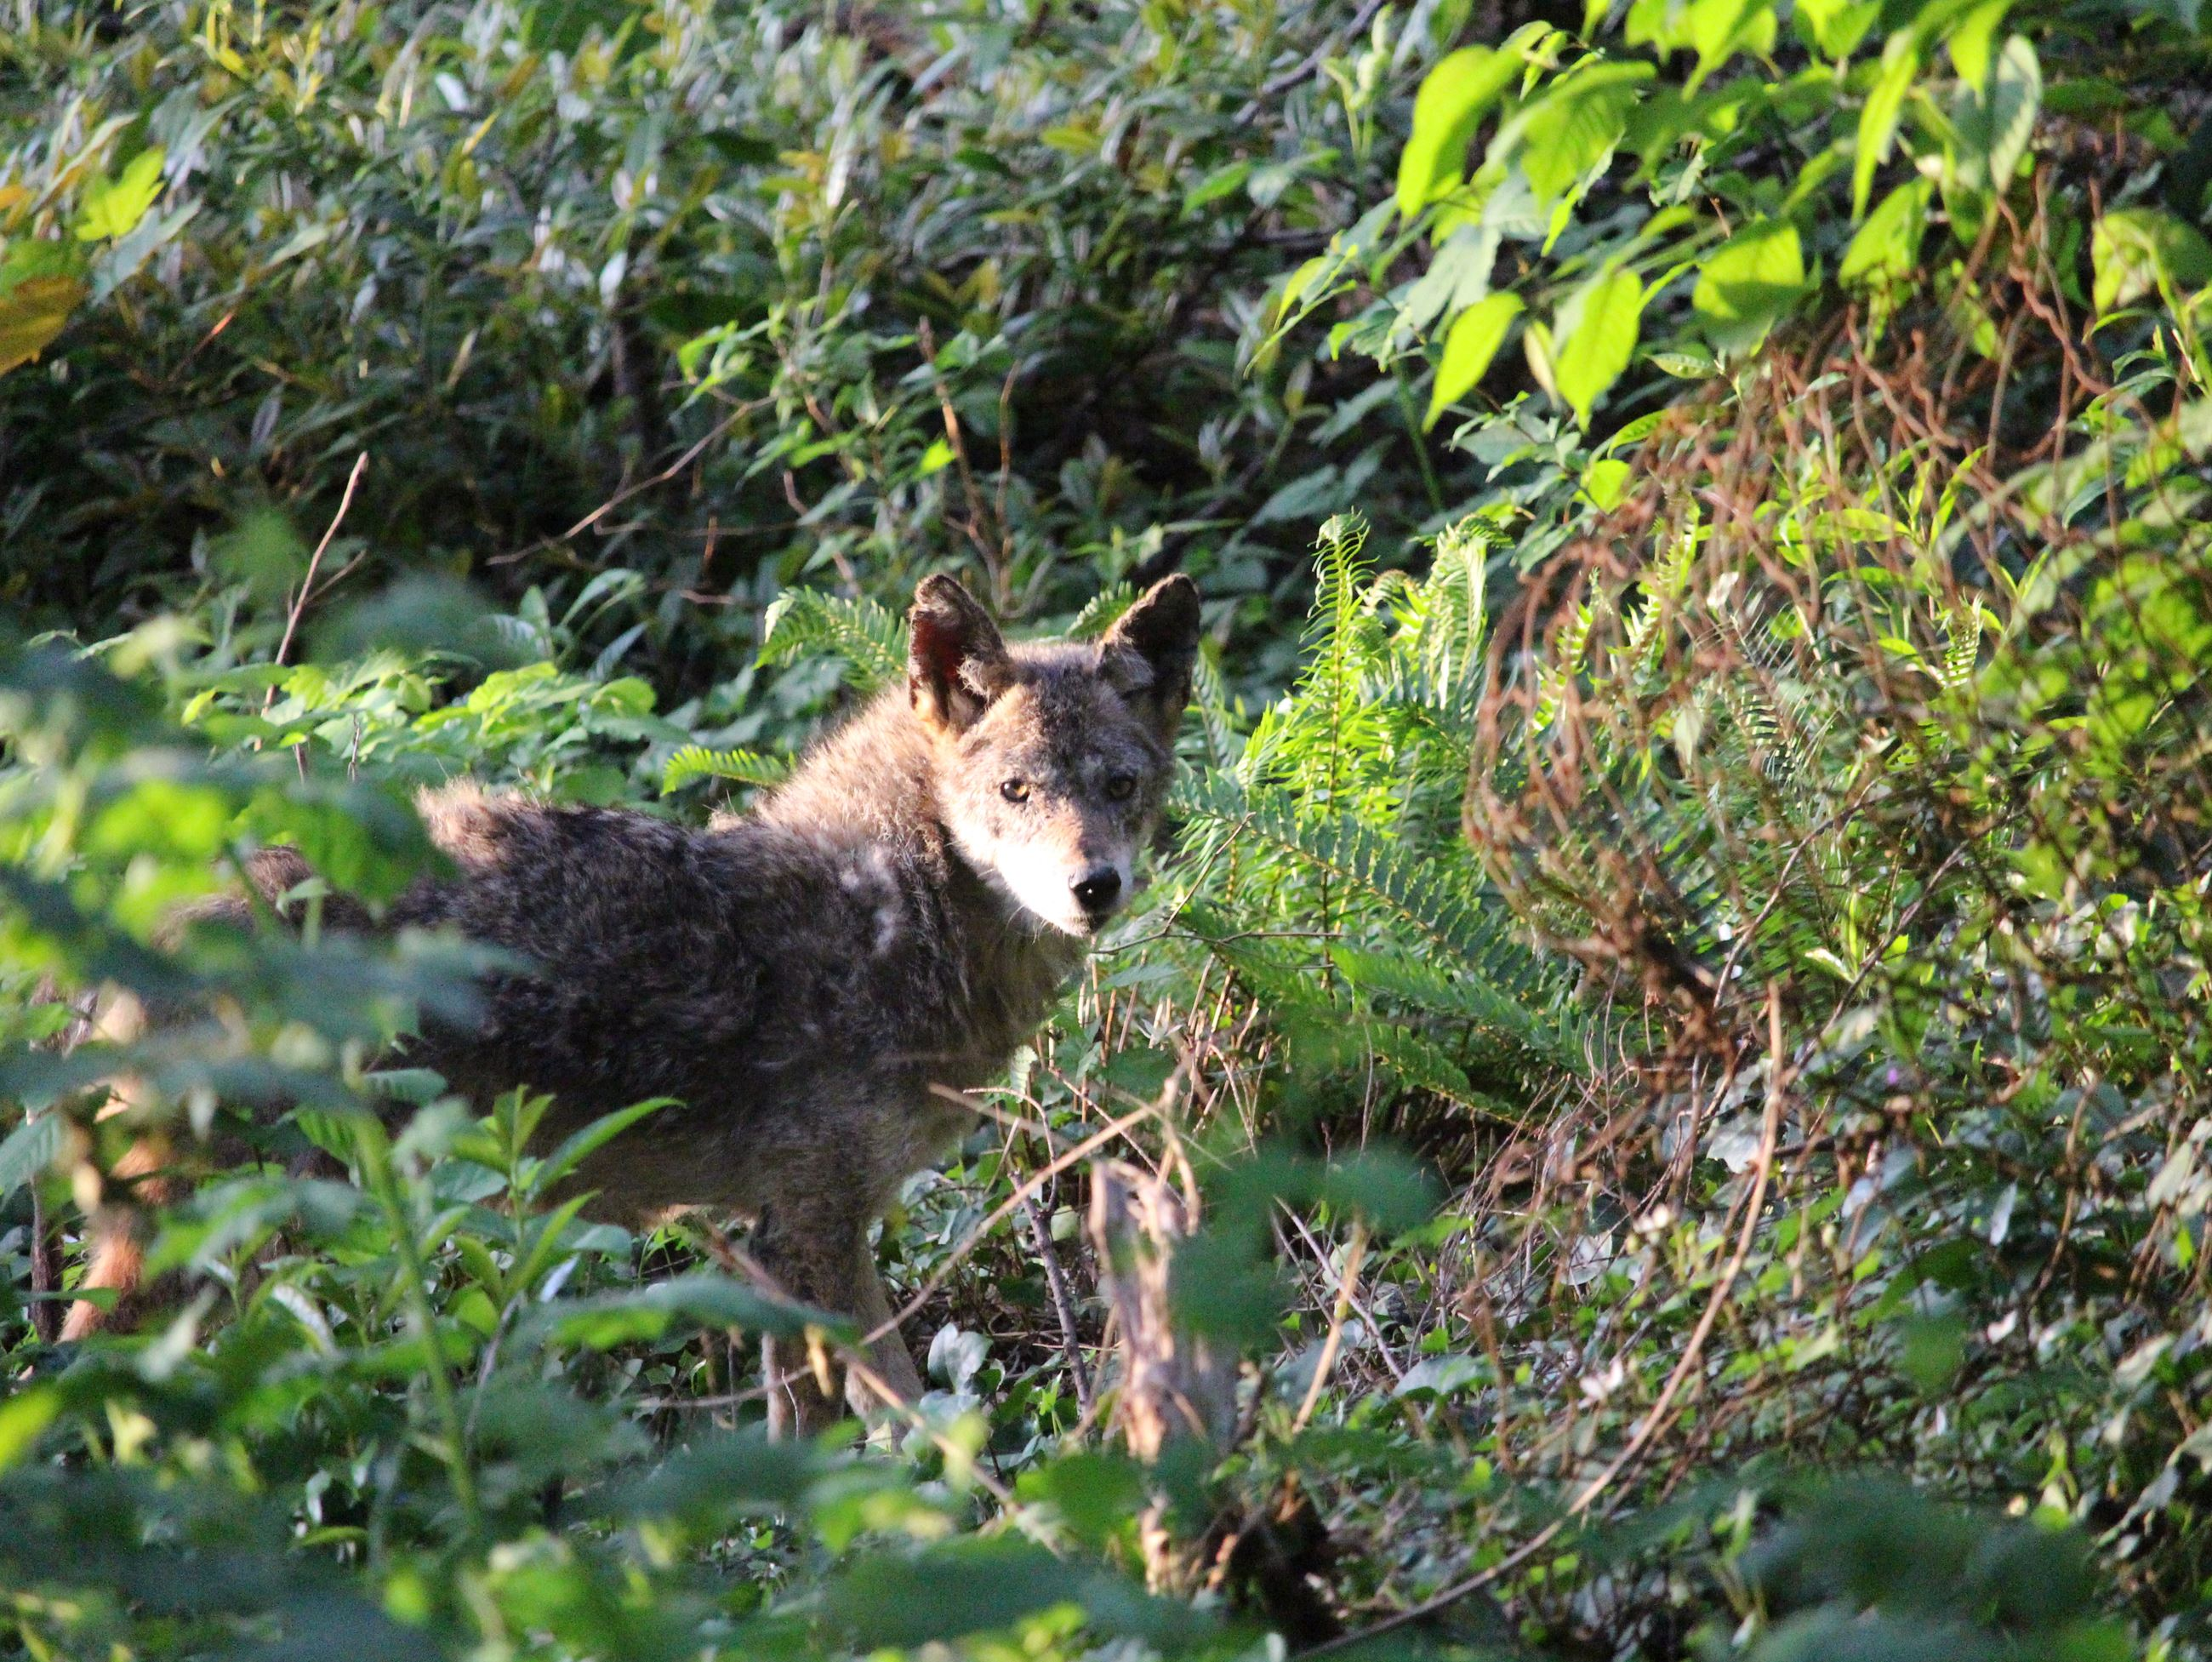 Coyote in the Bush - News Flash Image